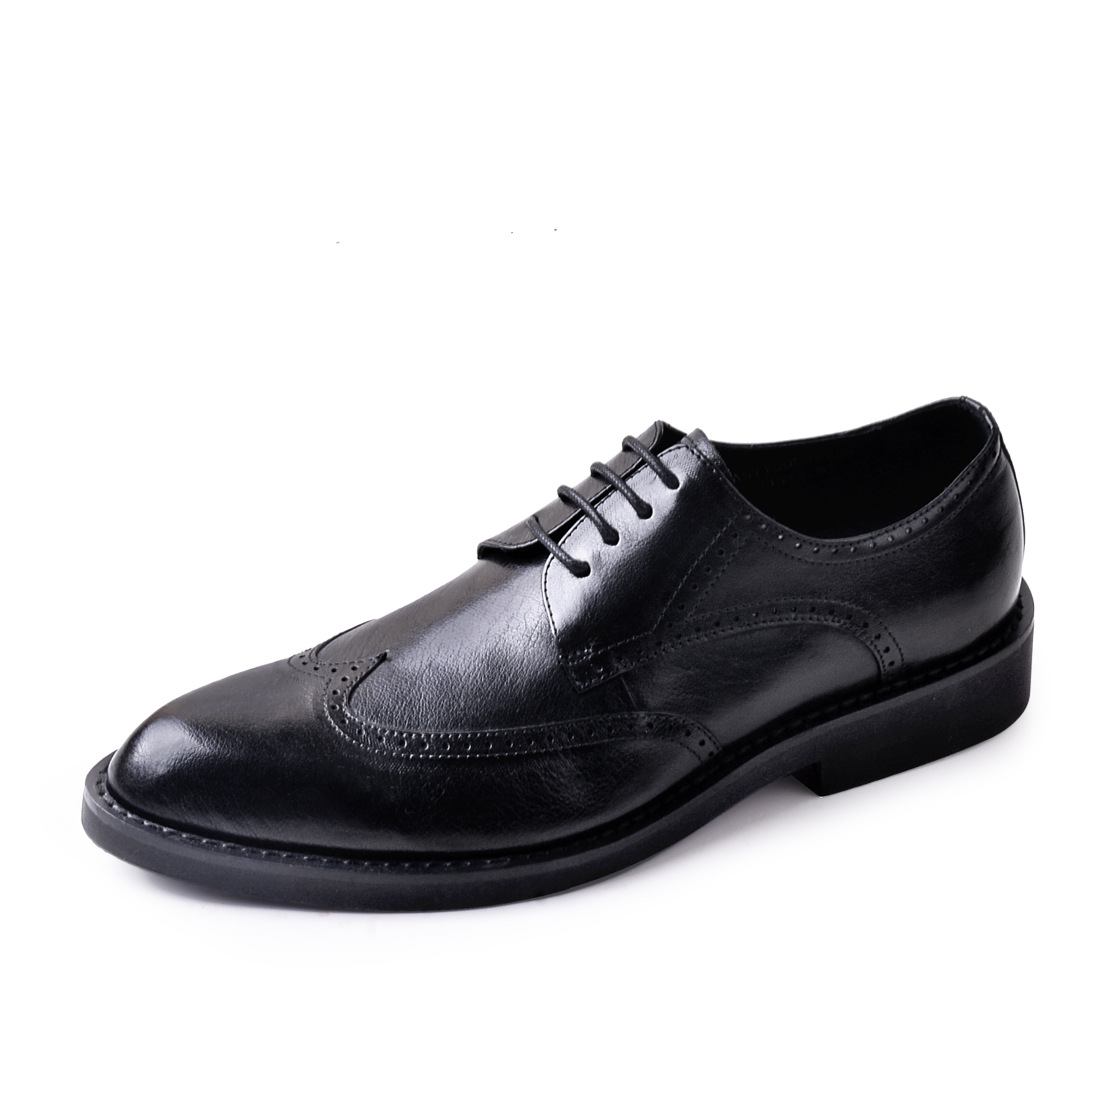 QYFCIOUFU 2019 Brogue Formal Shoes Men Cow Leather Dress Shoes Genuine Retro Pointed Toe Oxford Male Footwear Lace up US 11 5 in Formal Shoes from Shoes